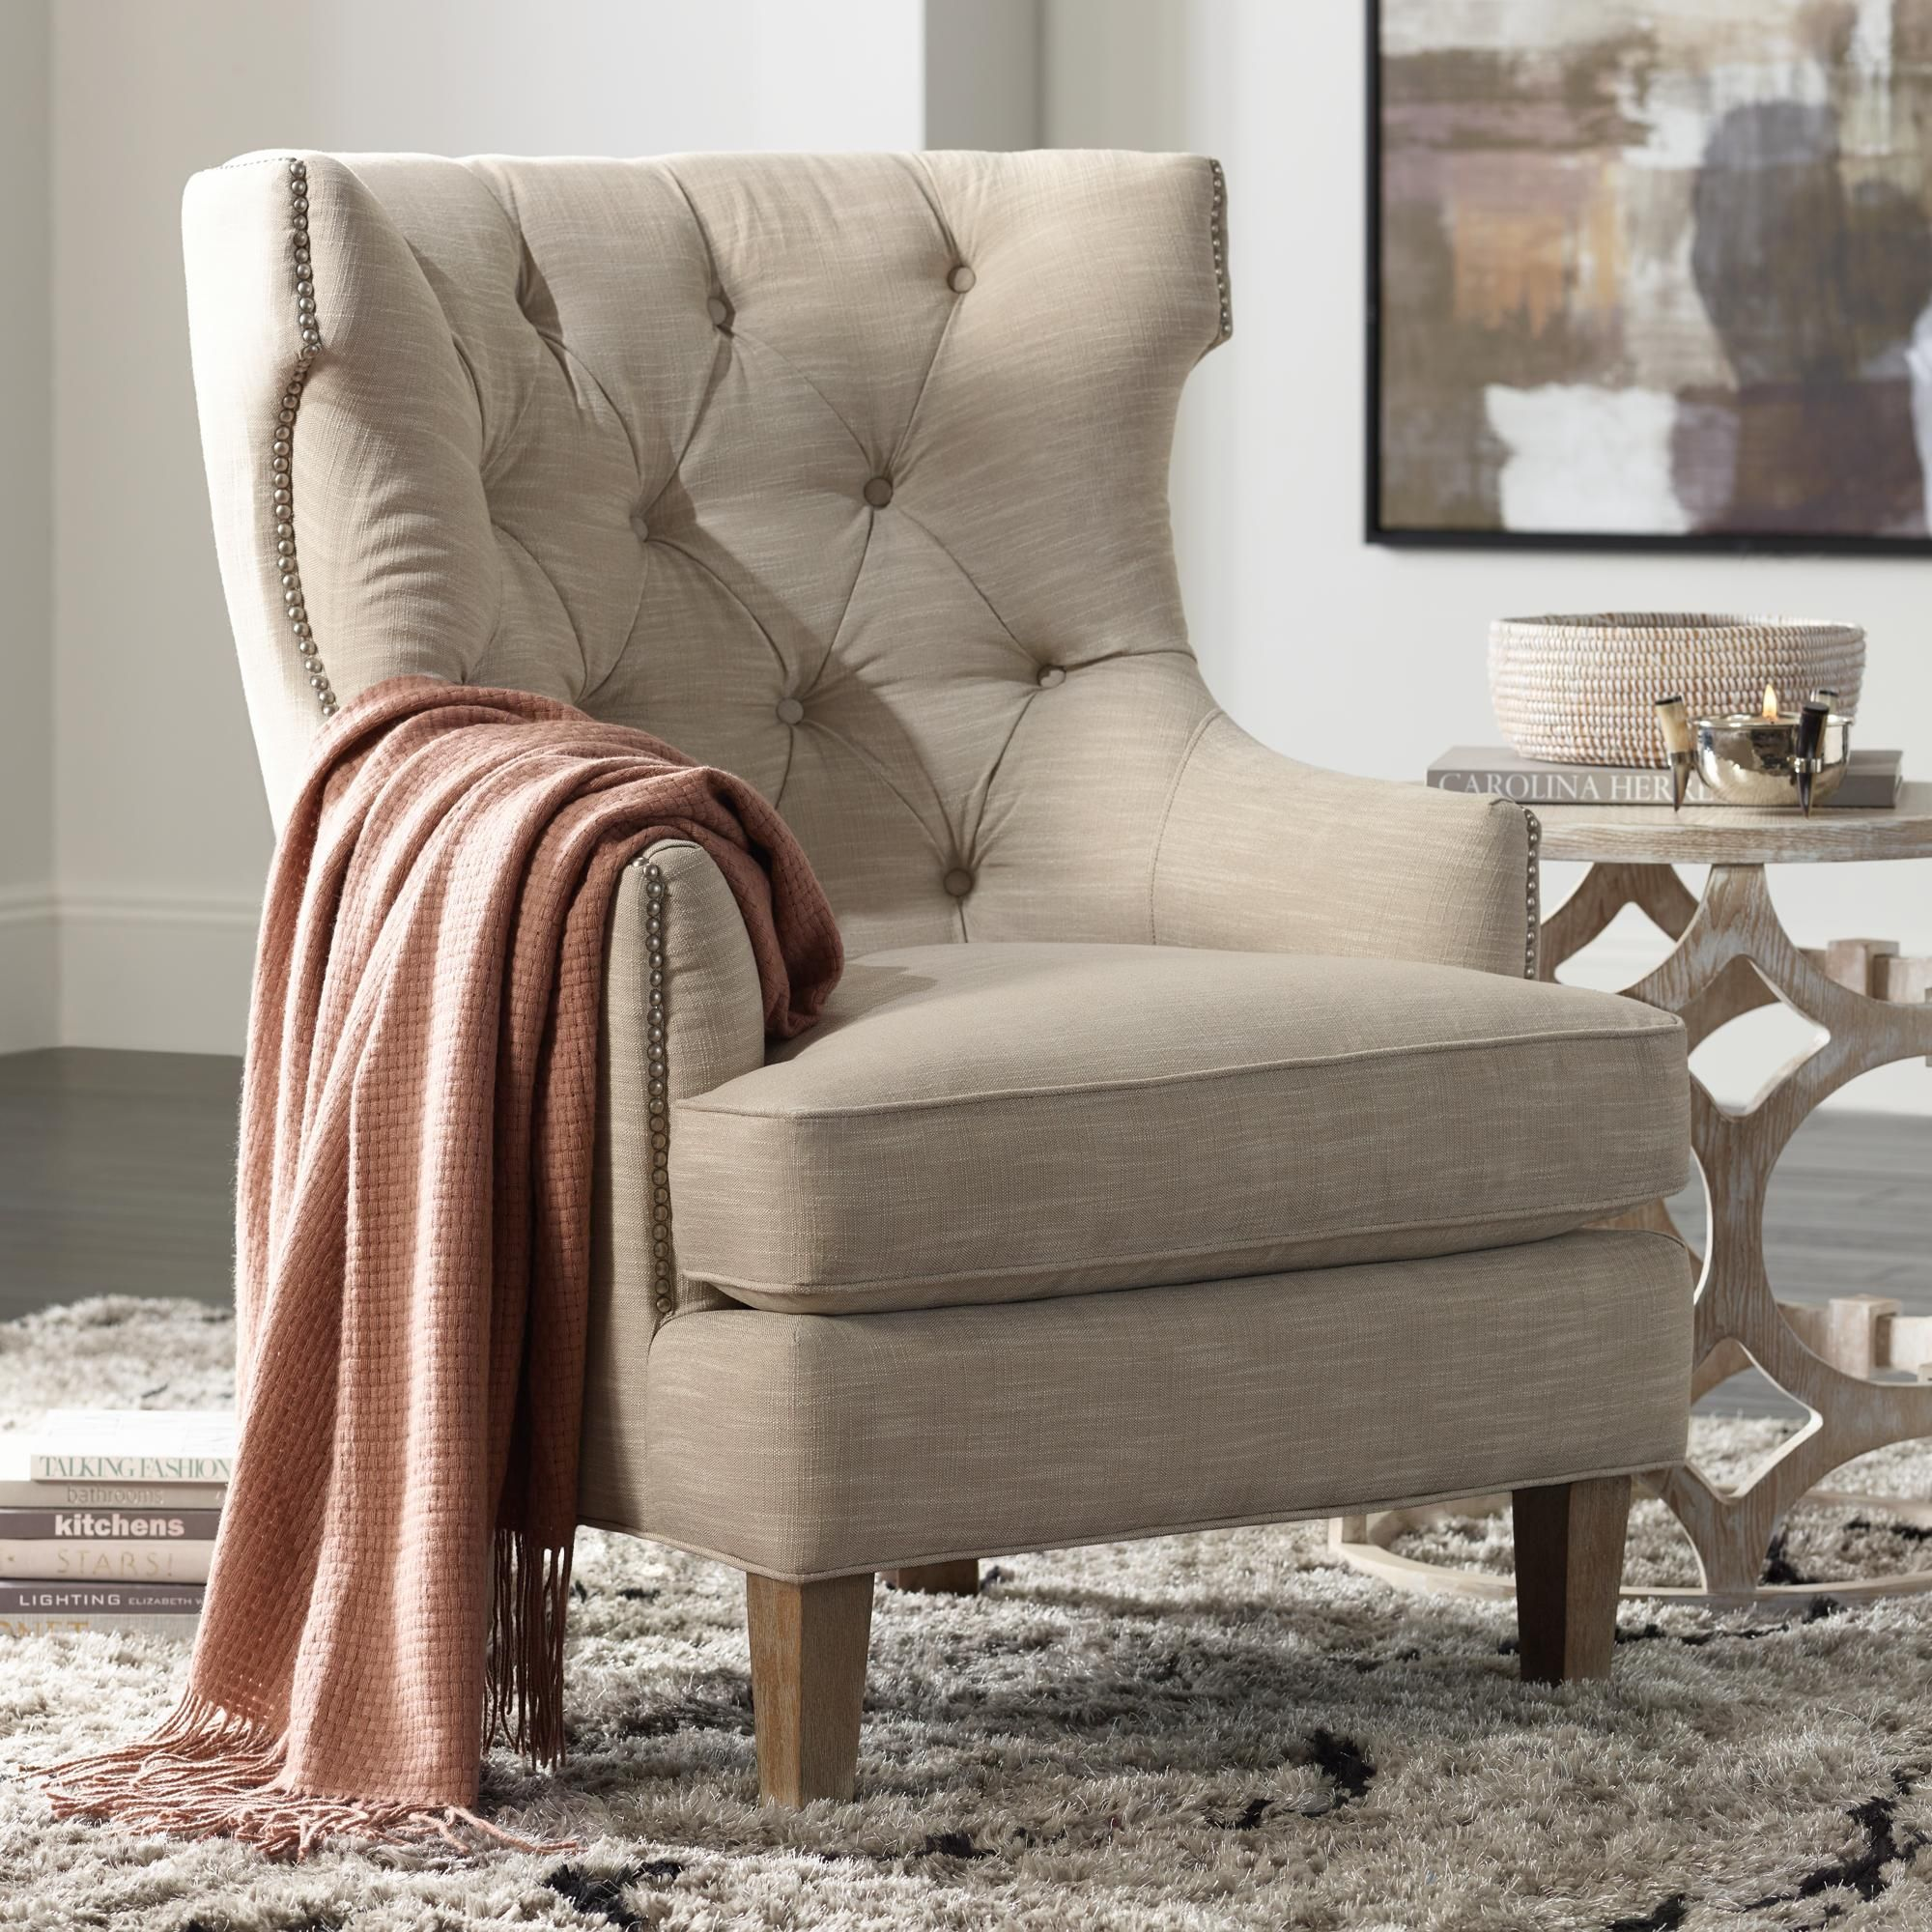 Reese Studio Oatmeal Highback Accent Chair  Style # 8G308 Stunning High Back Living Room Chair 2018